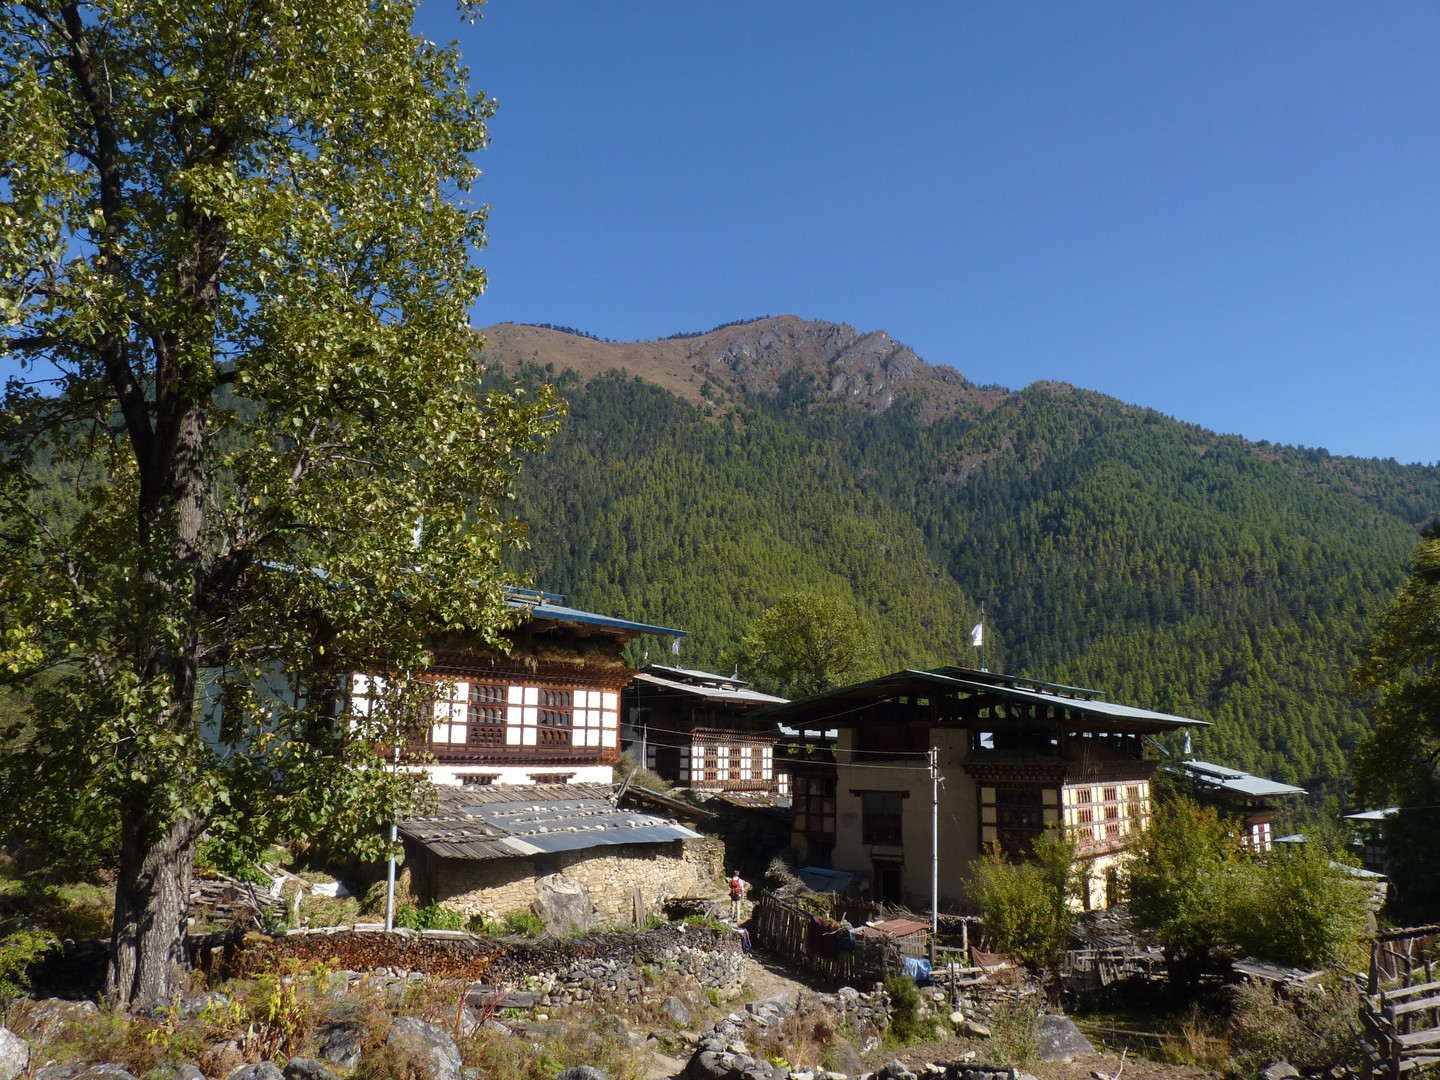 Nemjo One of our experiential tour hotels in Paro, Bhutan. Nemjo Heritage Lodge